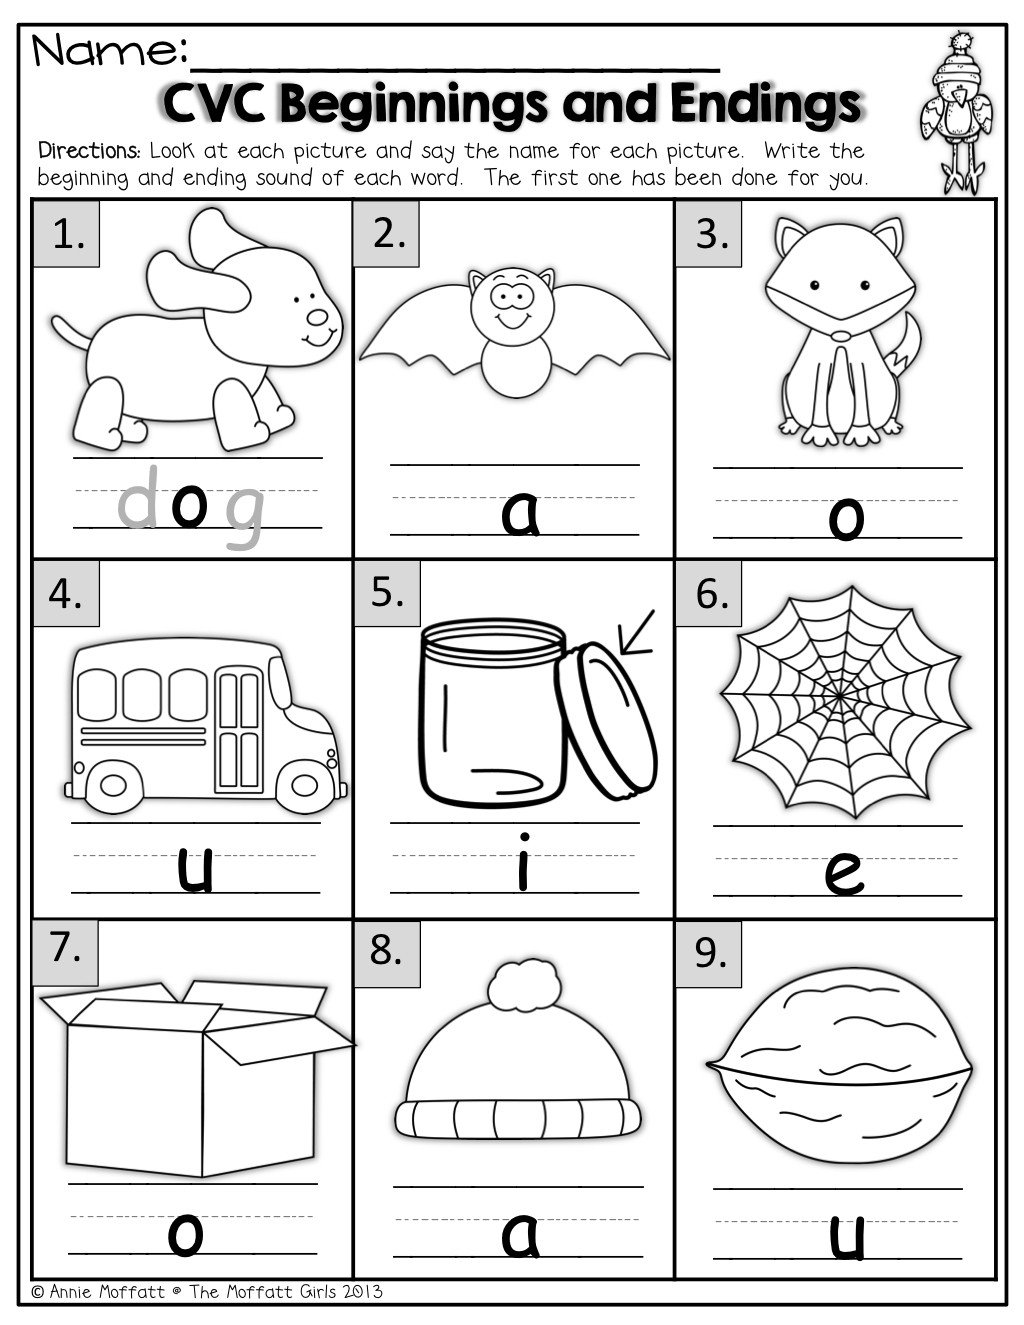 Beginning and Ending sounds Worksheet Cvc Beginning and Ending sound Worksheet